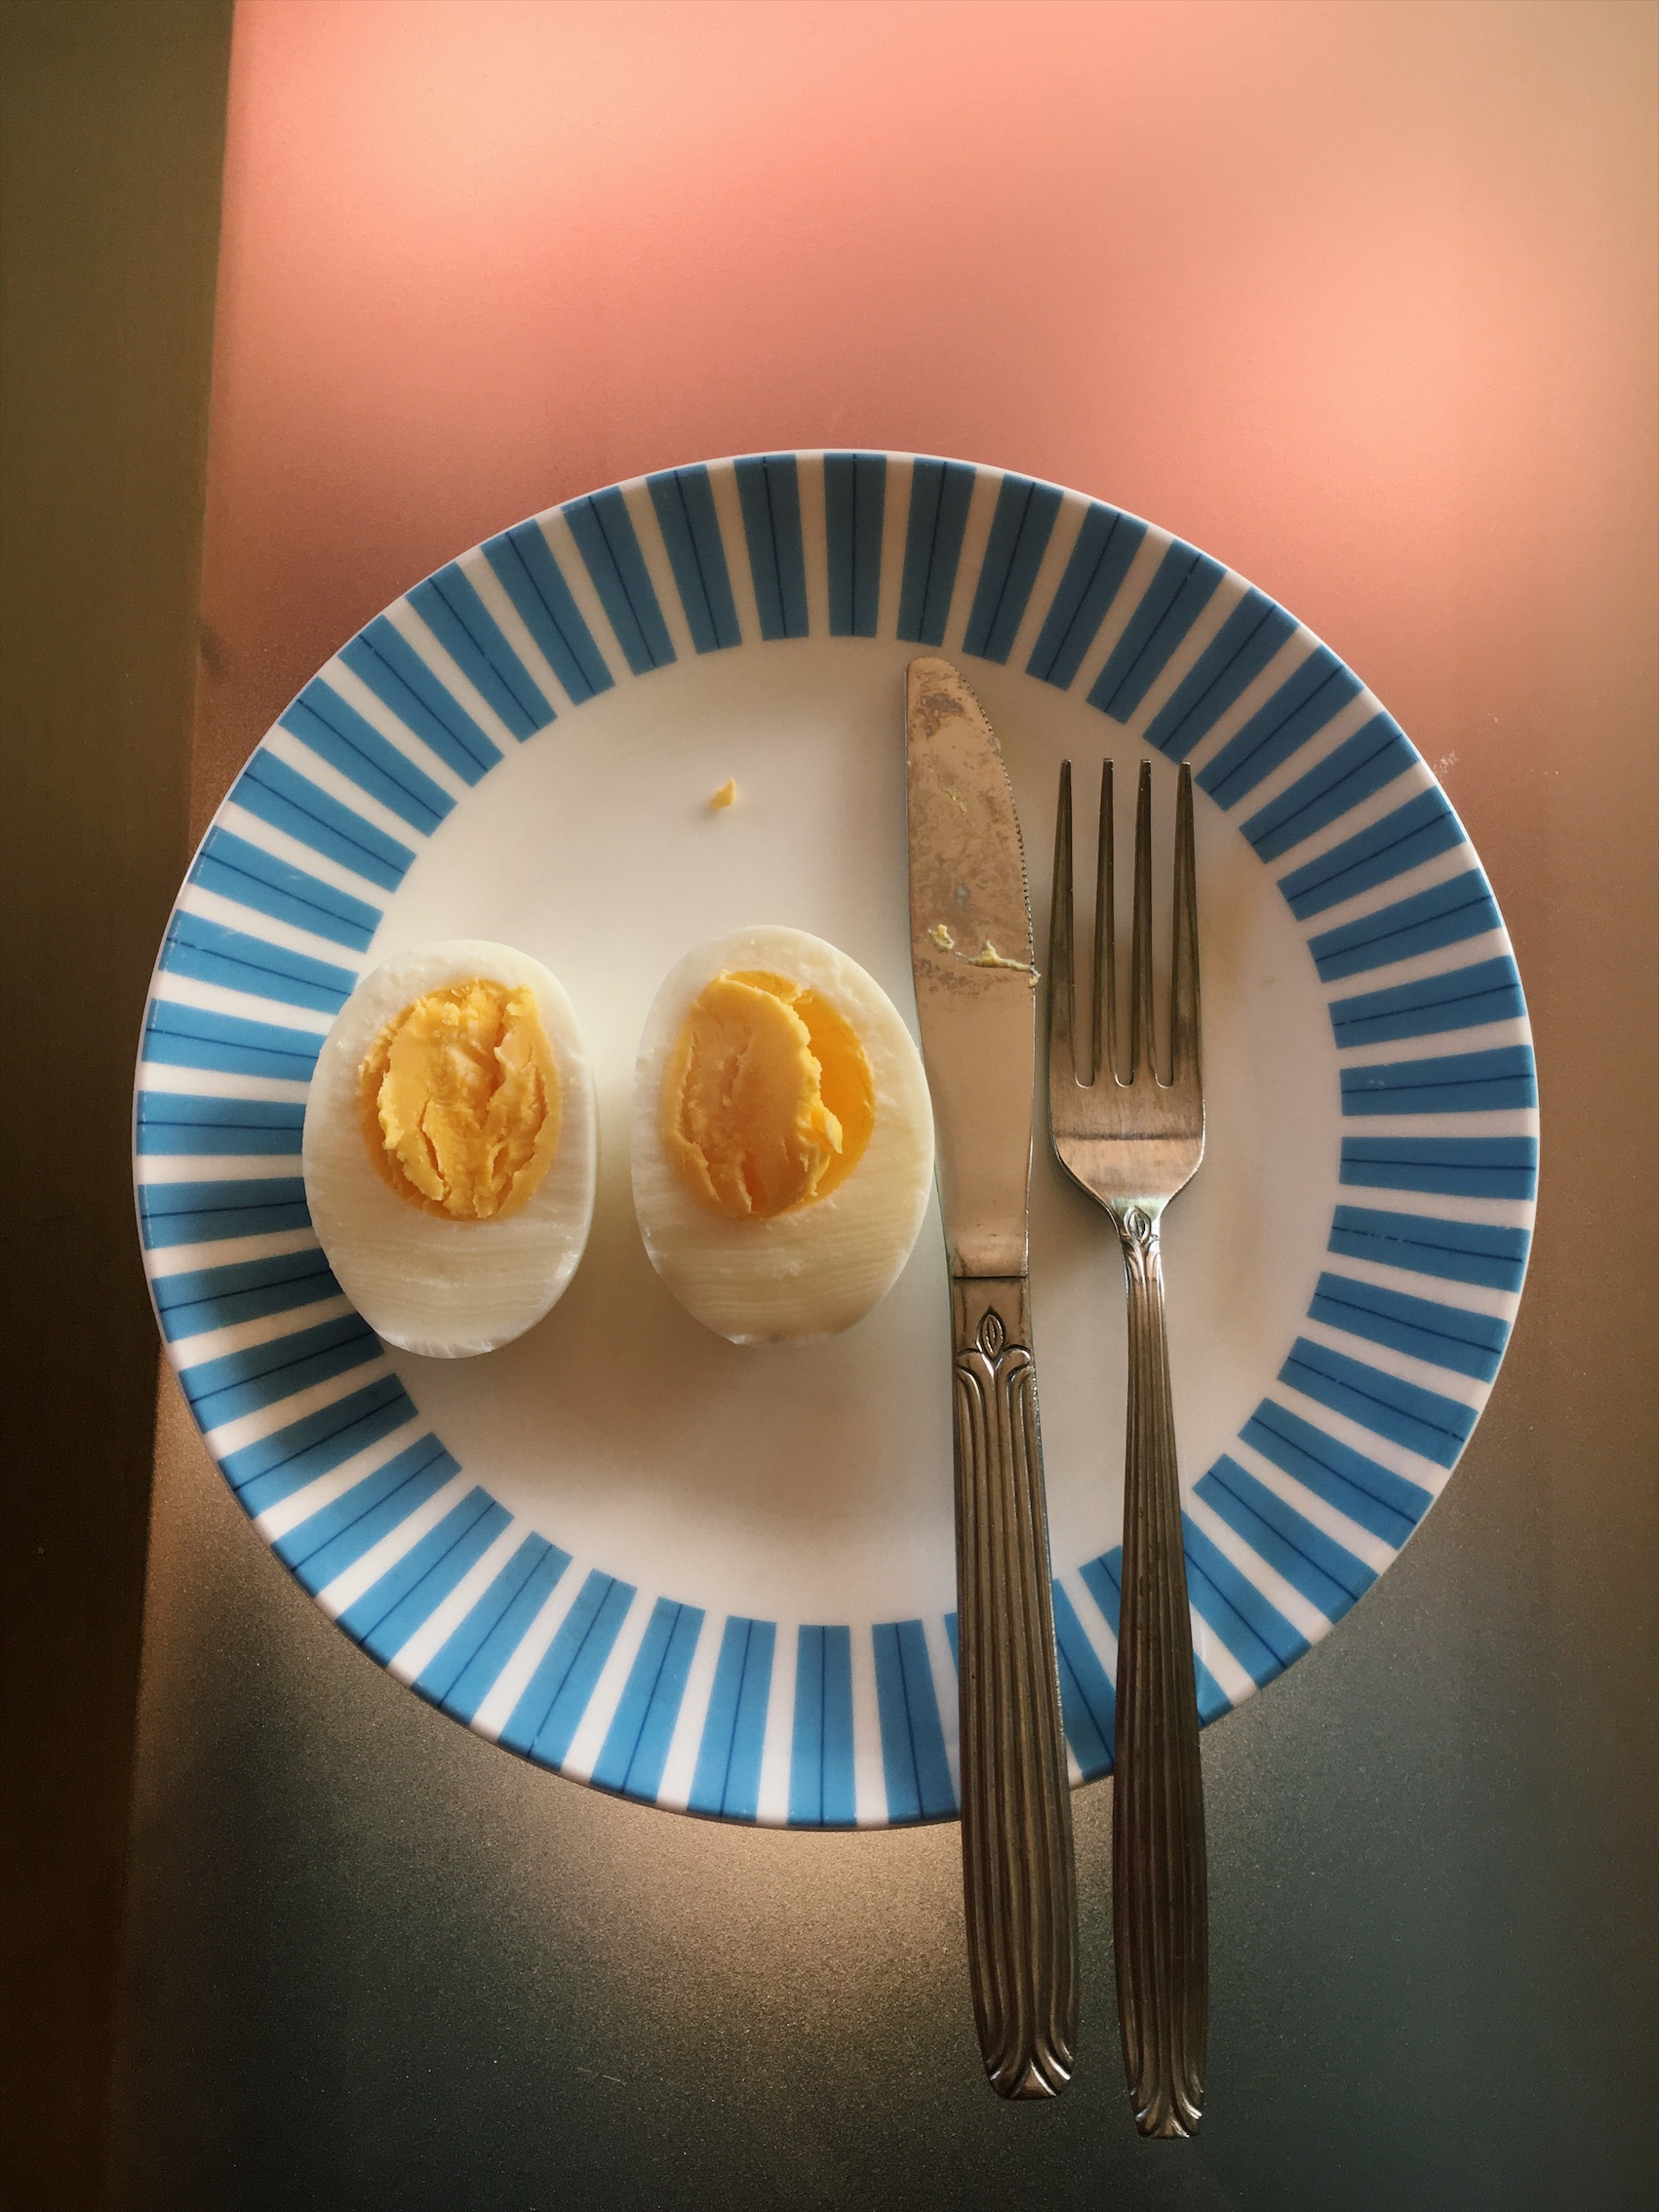 The best Saturday: eating an egg.